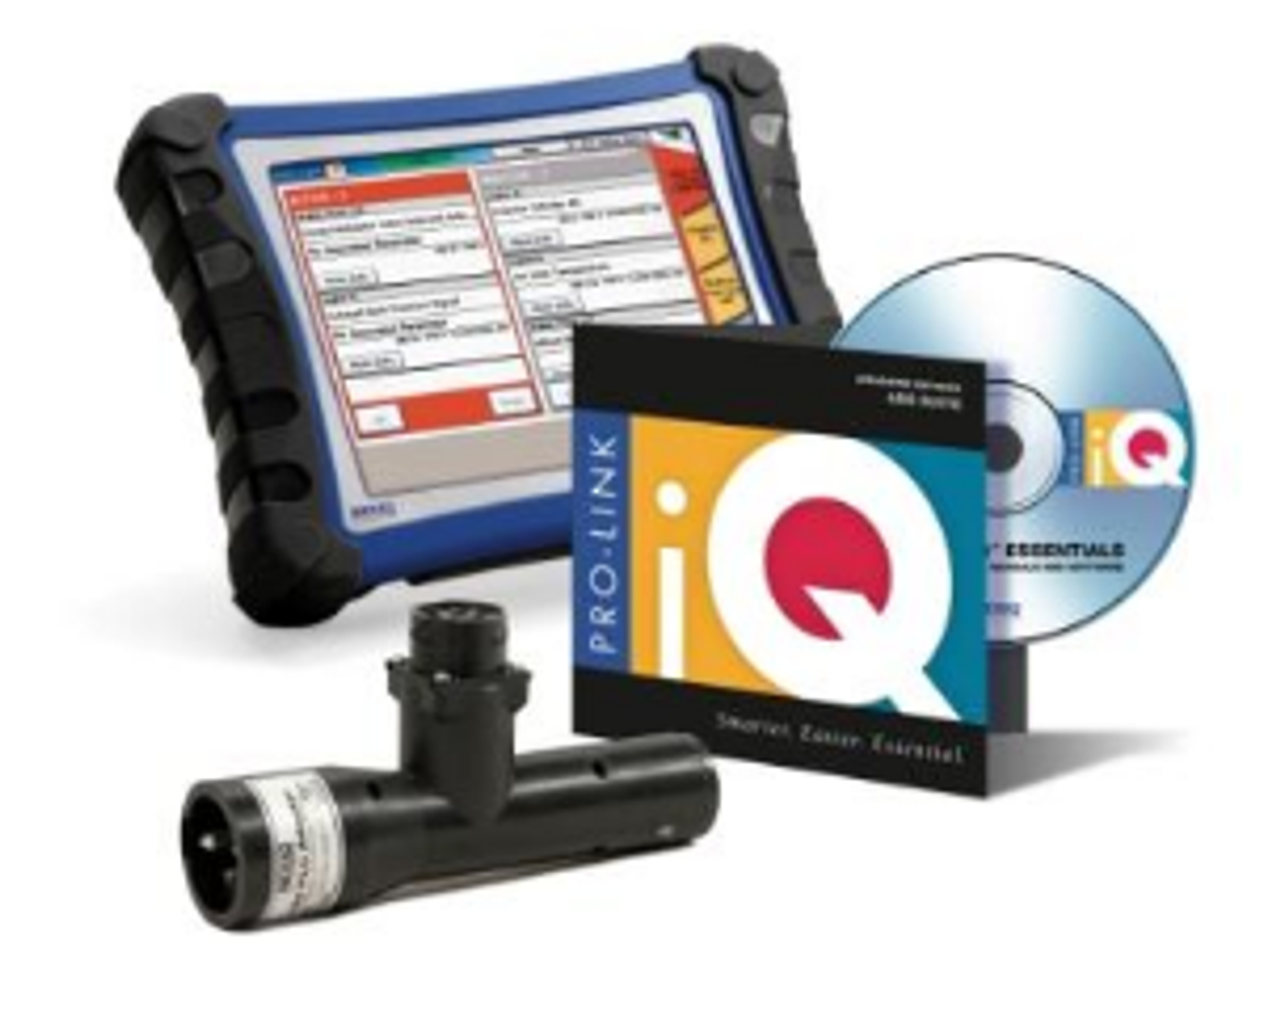 Pro-Link iQ 682020 Complete ABS Kit